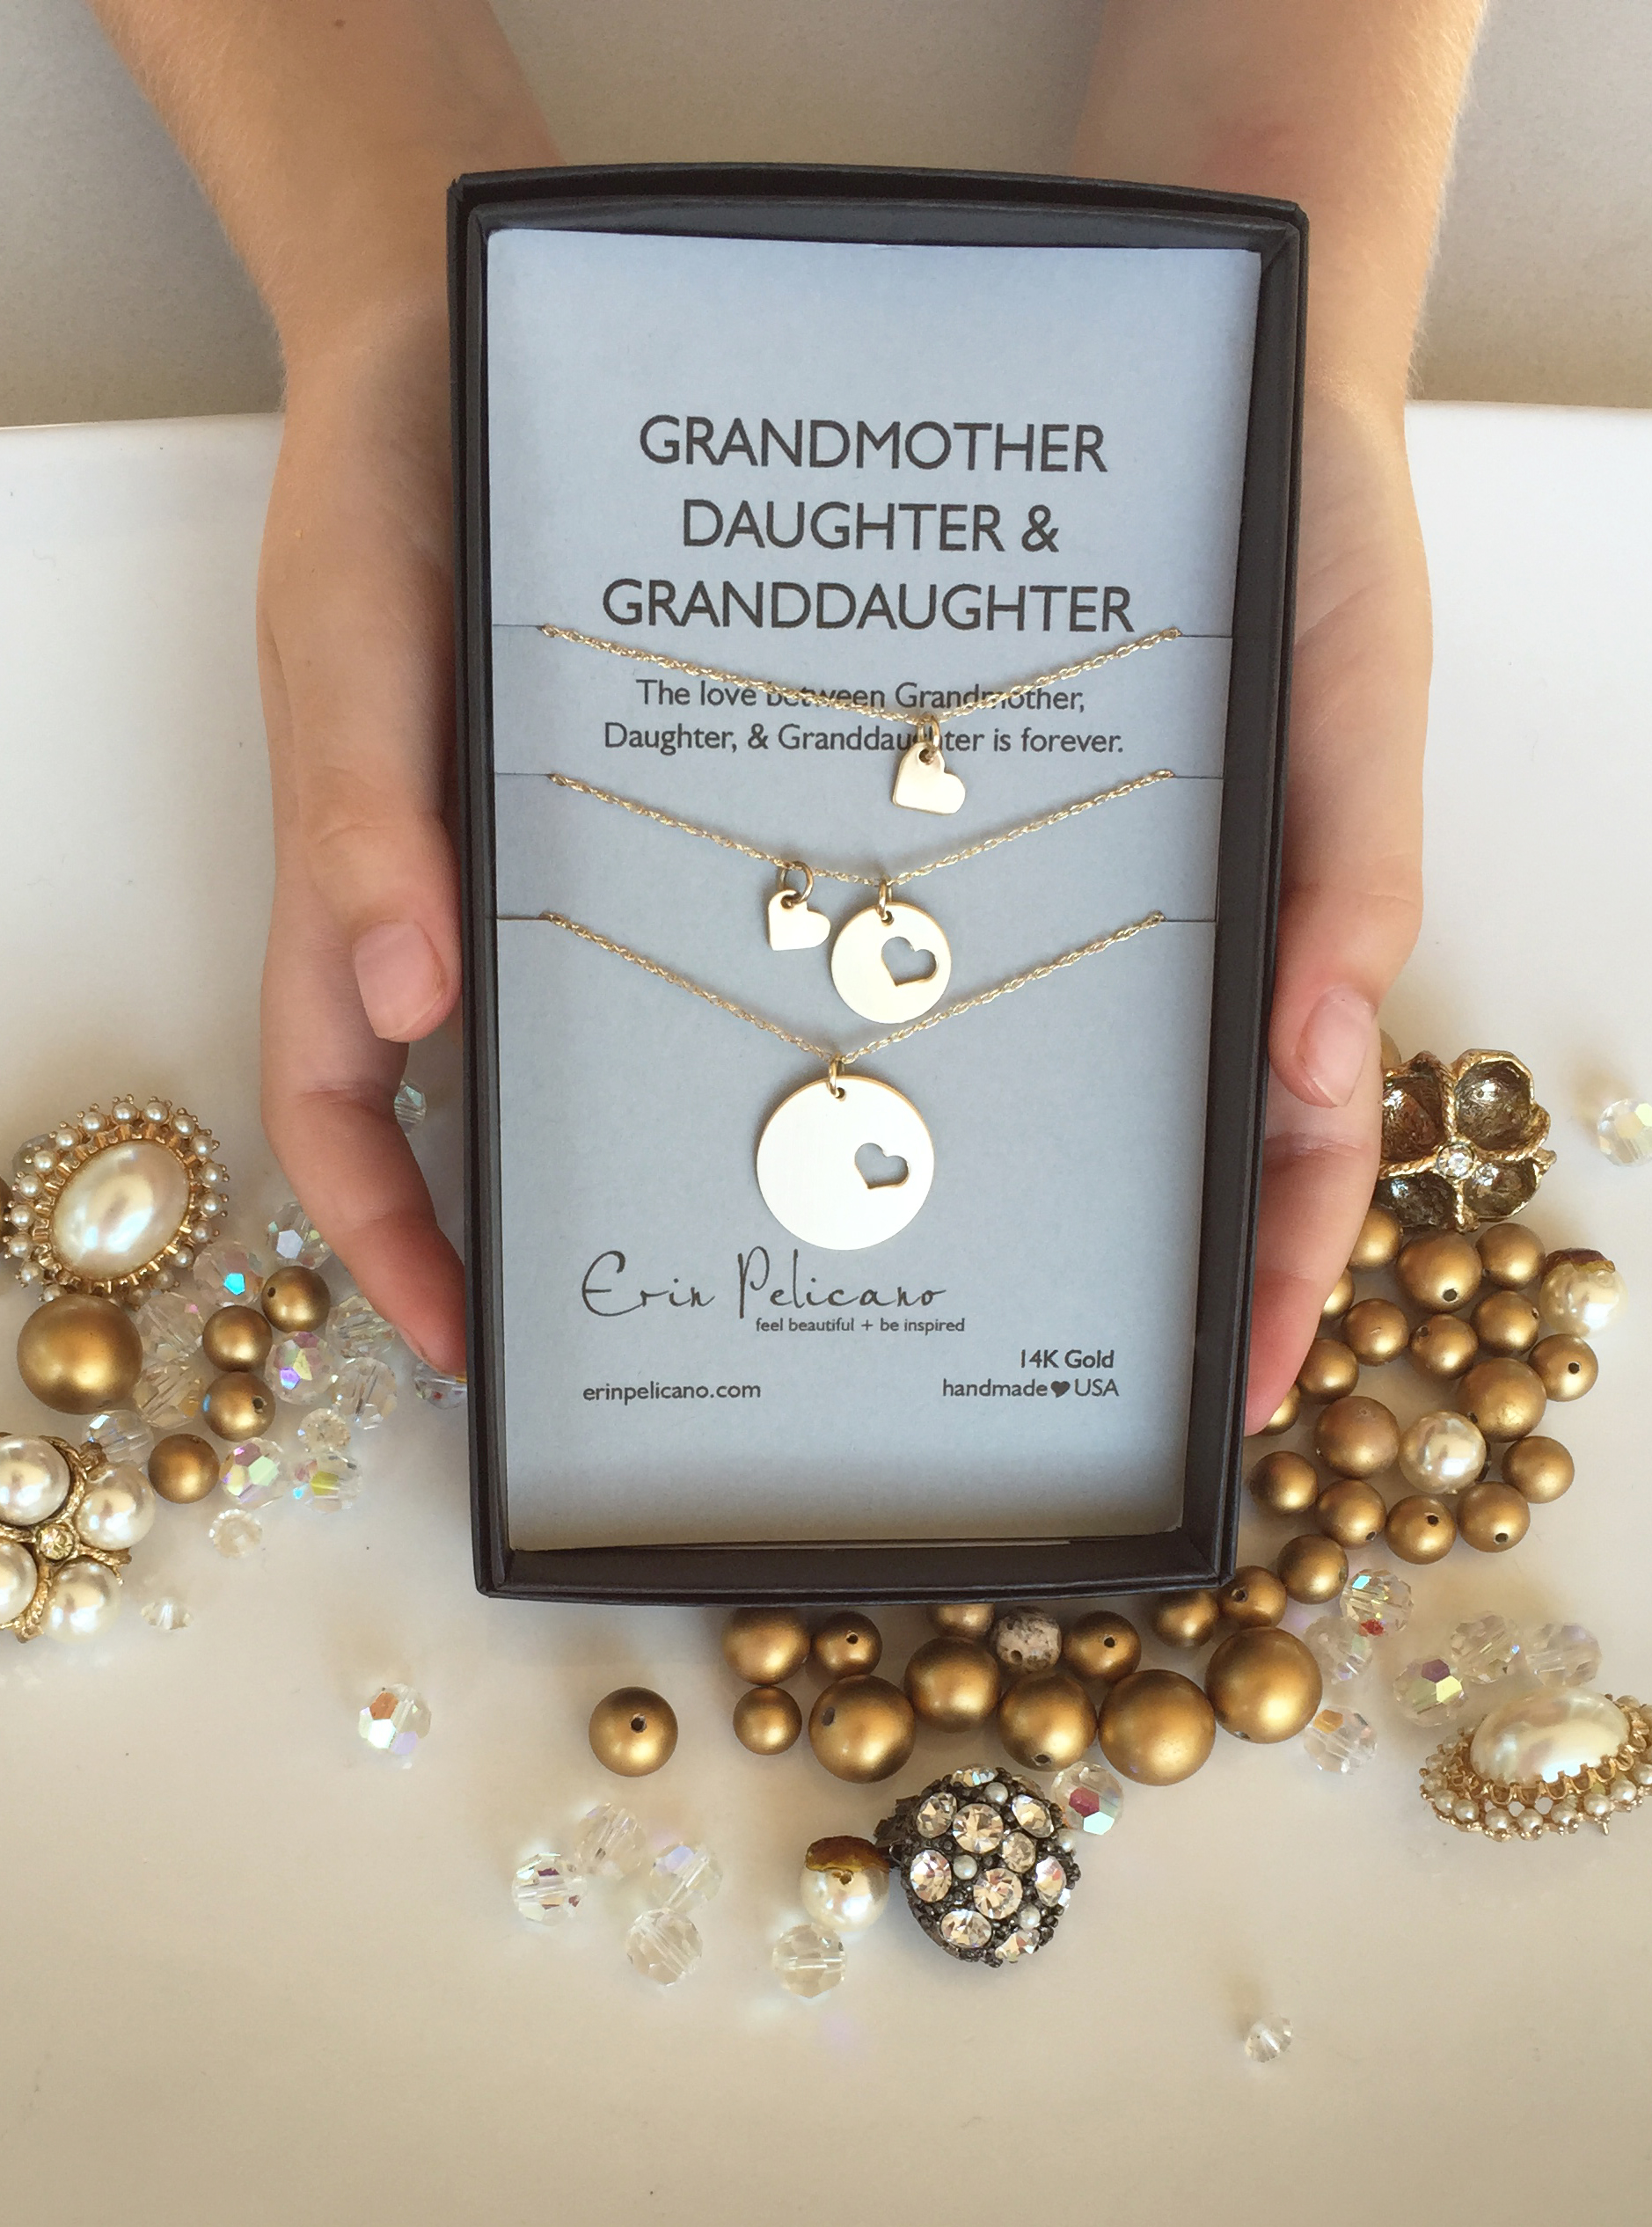 Majestic G Mor Mor Mor Daughter Generationsjewelry G Mor Daughter Necklace Set Erin Pelicano Gifts Ma From Children Ma Amazon Gifts gifts Gifts For Grandma